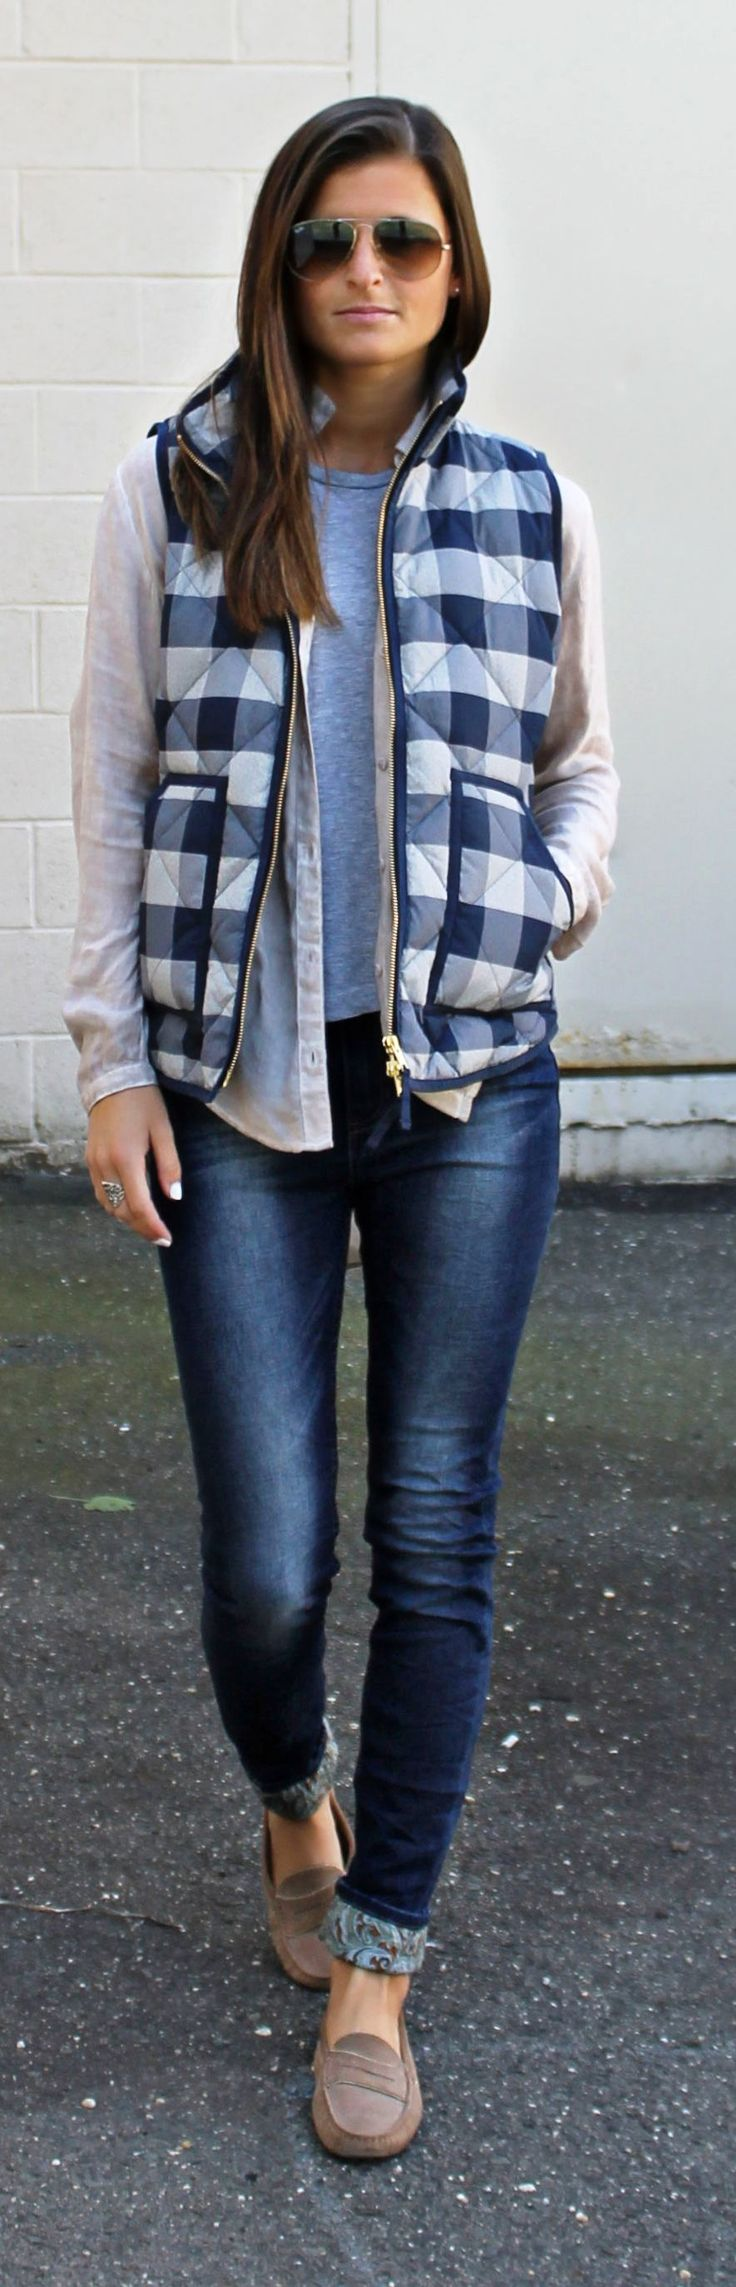 Blue And White Checkered Puffer Vest women fashion outfit clothing style apparel @roressclothes closet ideas